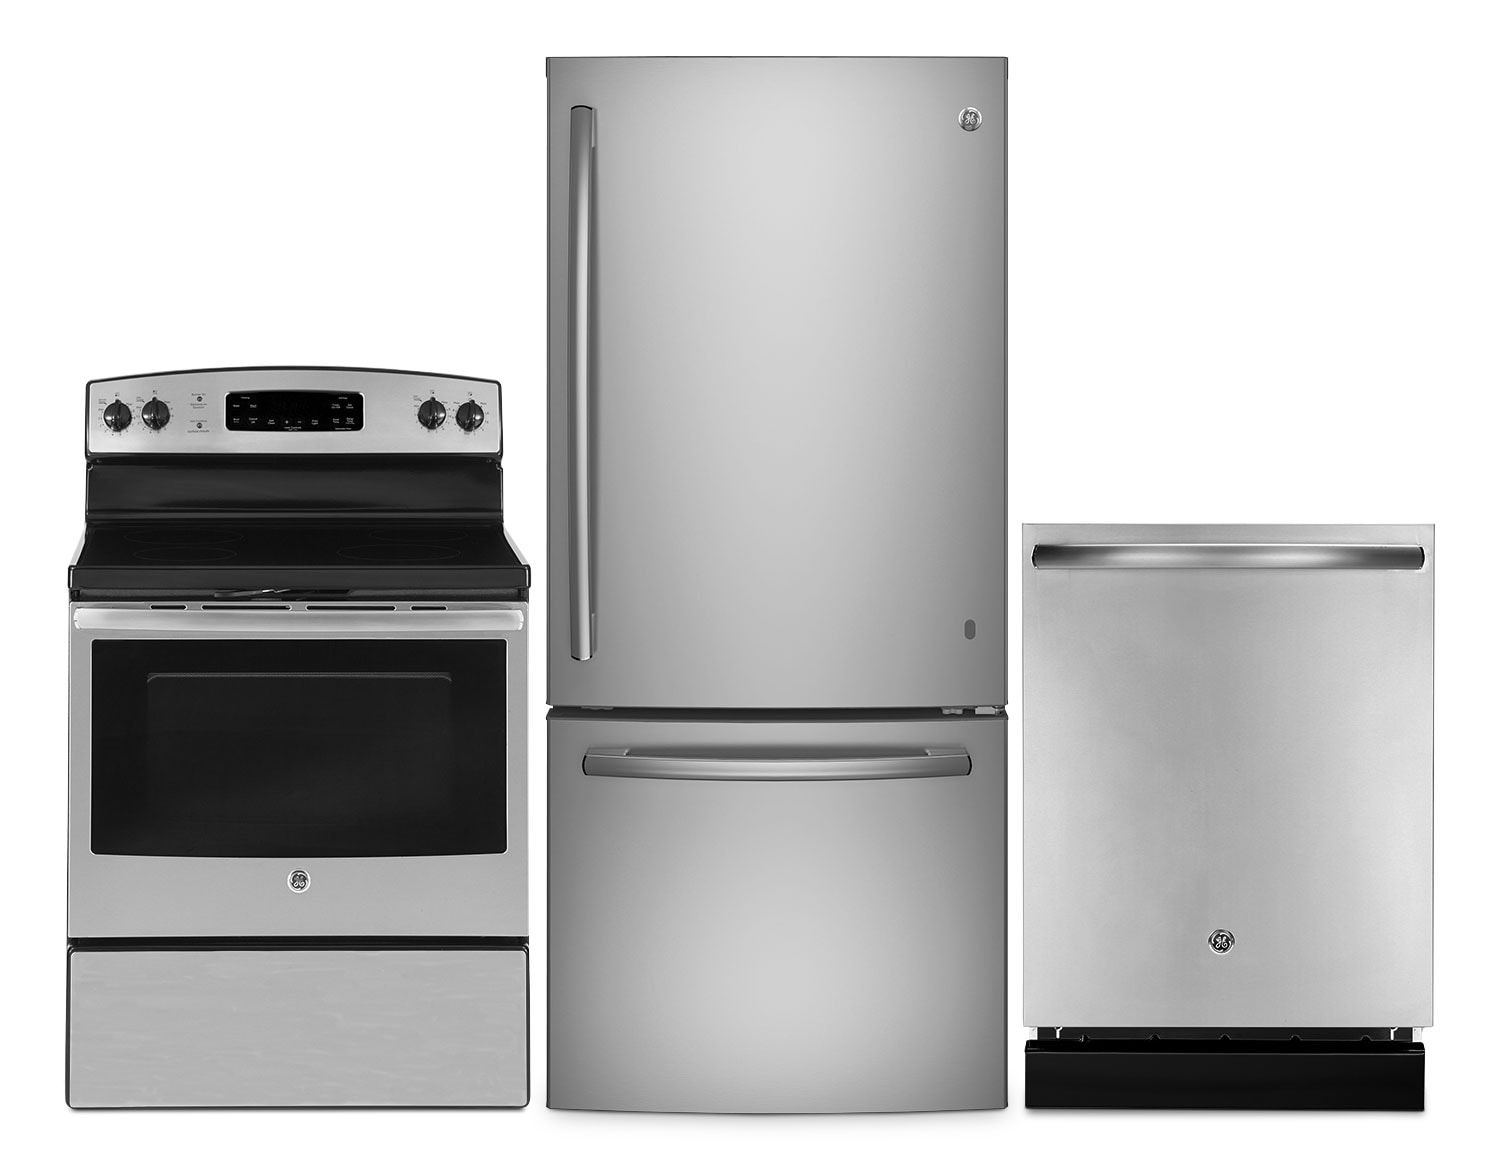 GE 21 Cu. Ft. Bottom-Mount Refrigerator, 5.0 Cu. Ft. Electric Range and Dishwasher – Stainless Steel